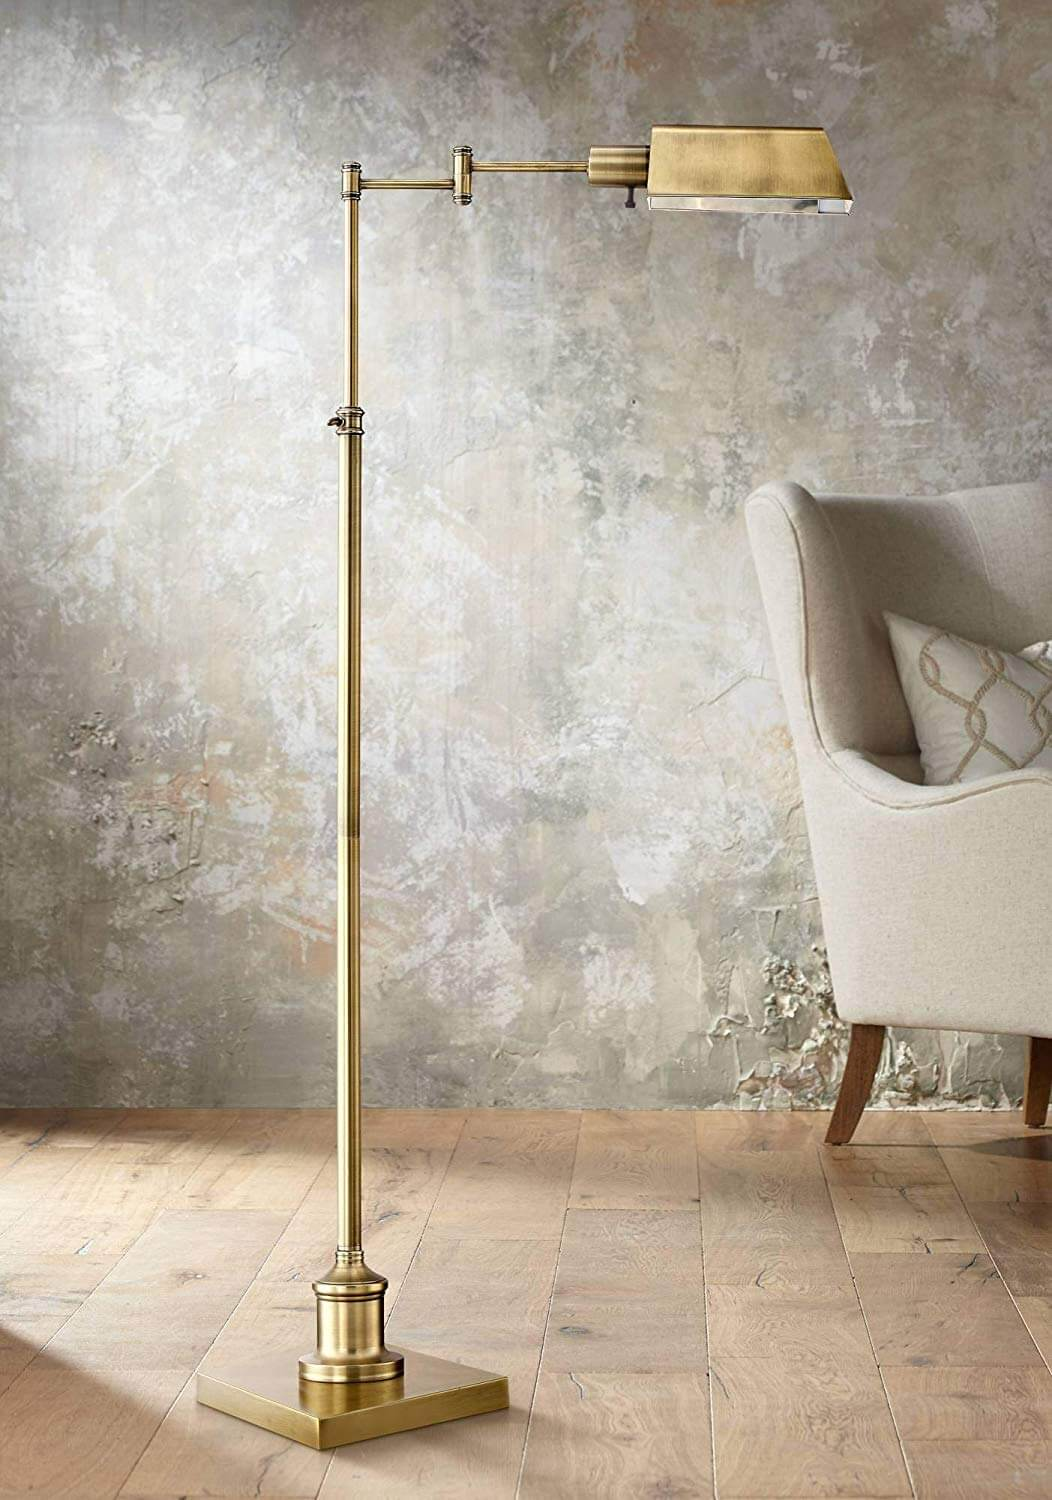 Nothing Beats a Classic Pharmacy Floor Lamp